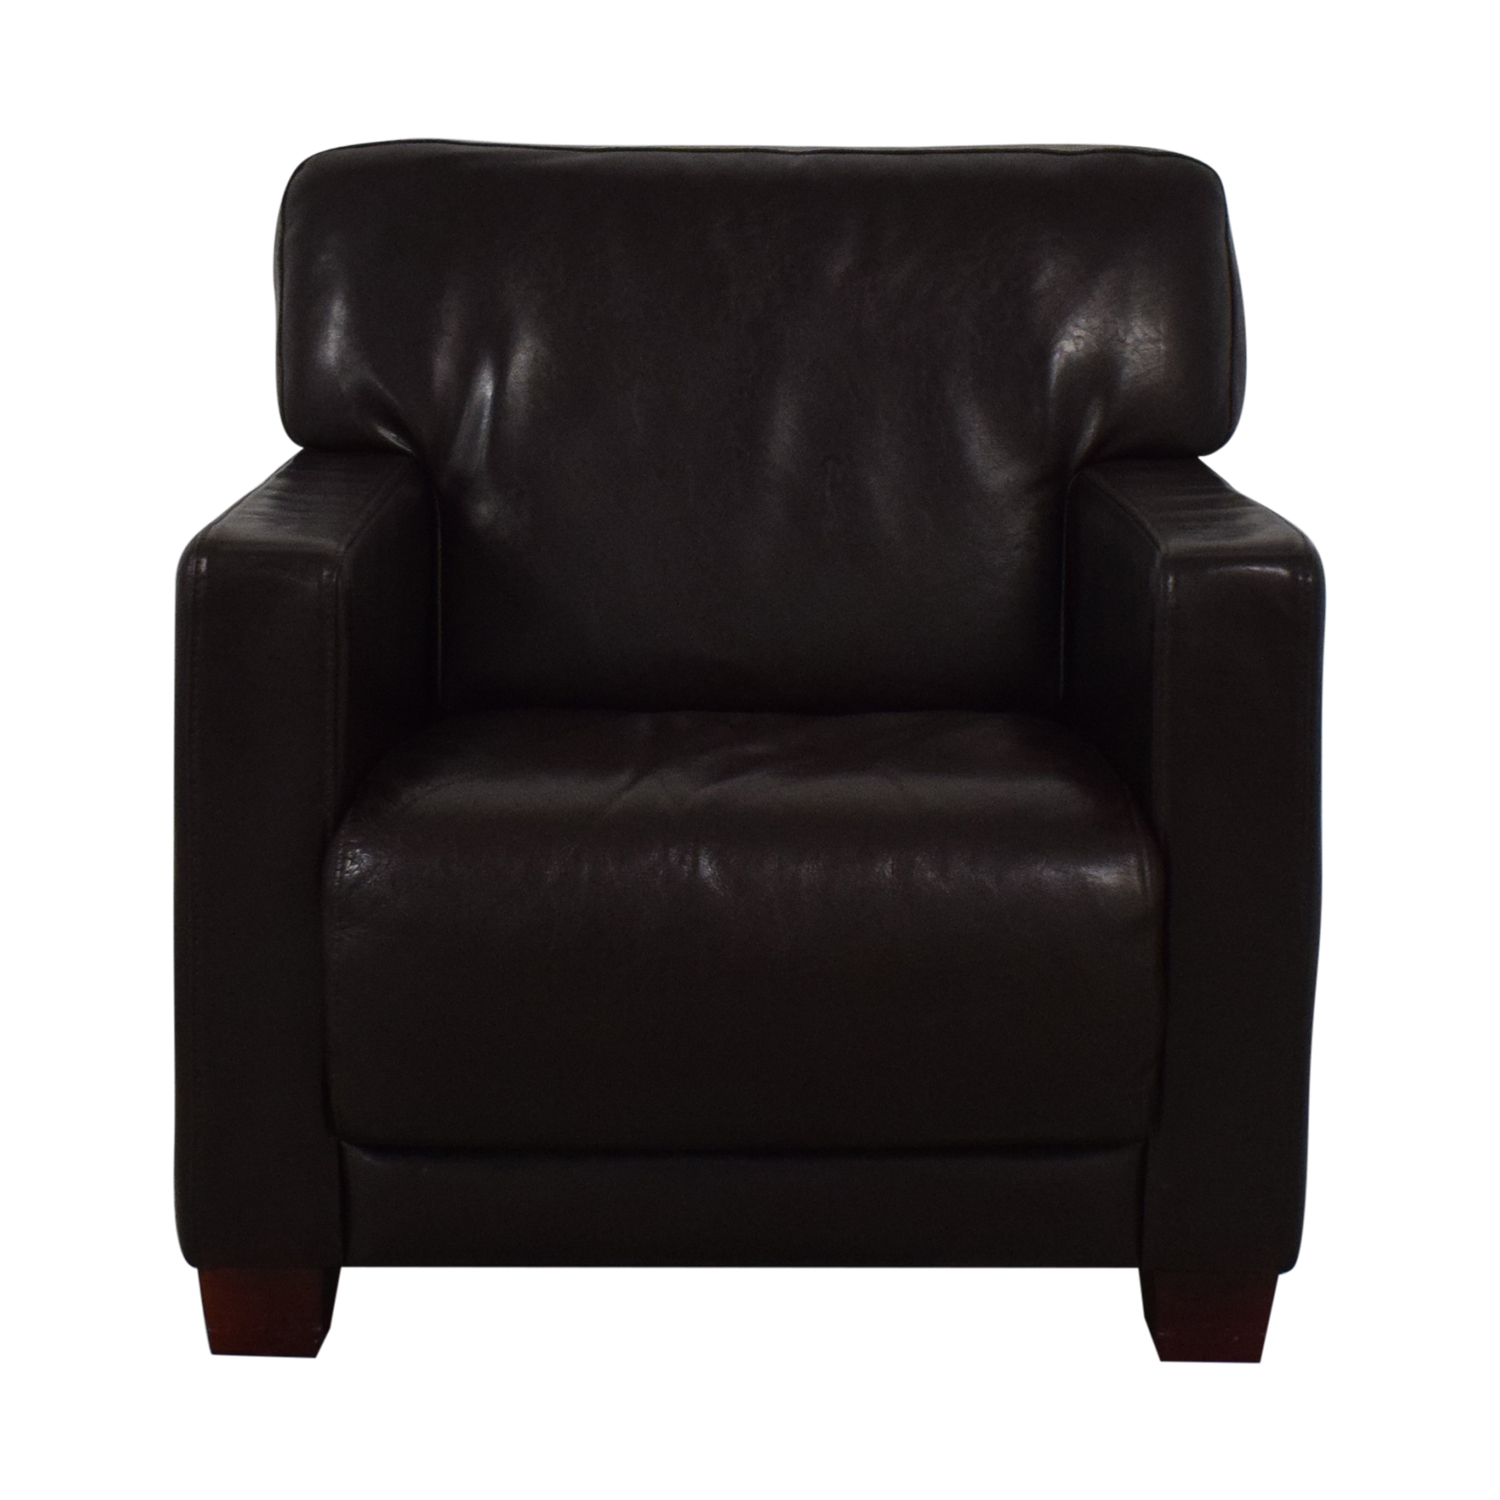 Door Store Door Store Club Armchair brown